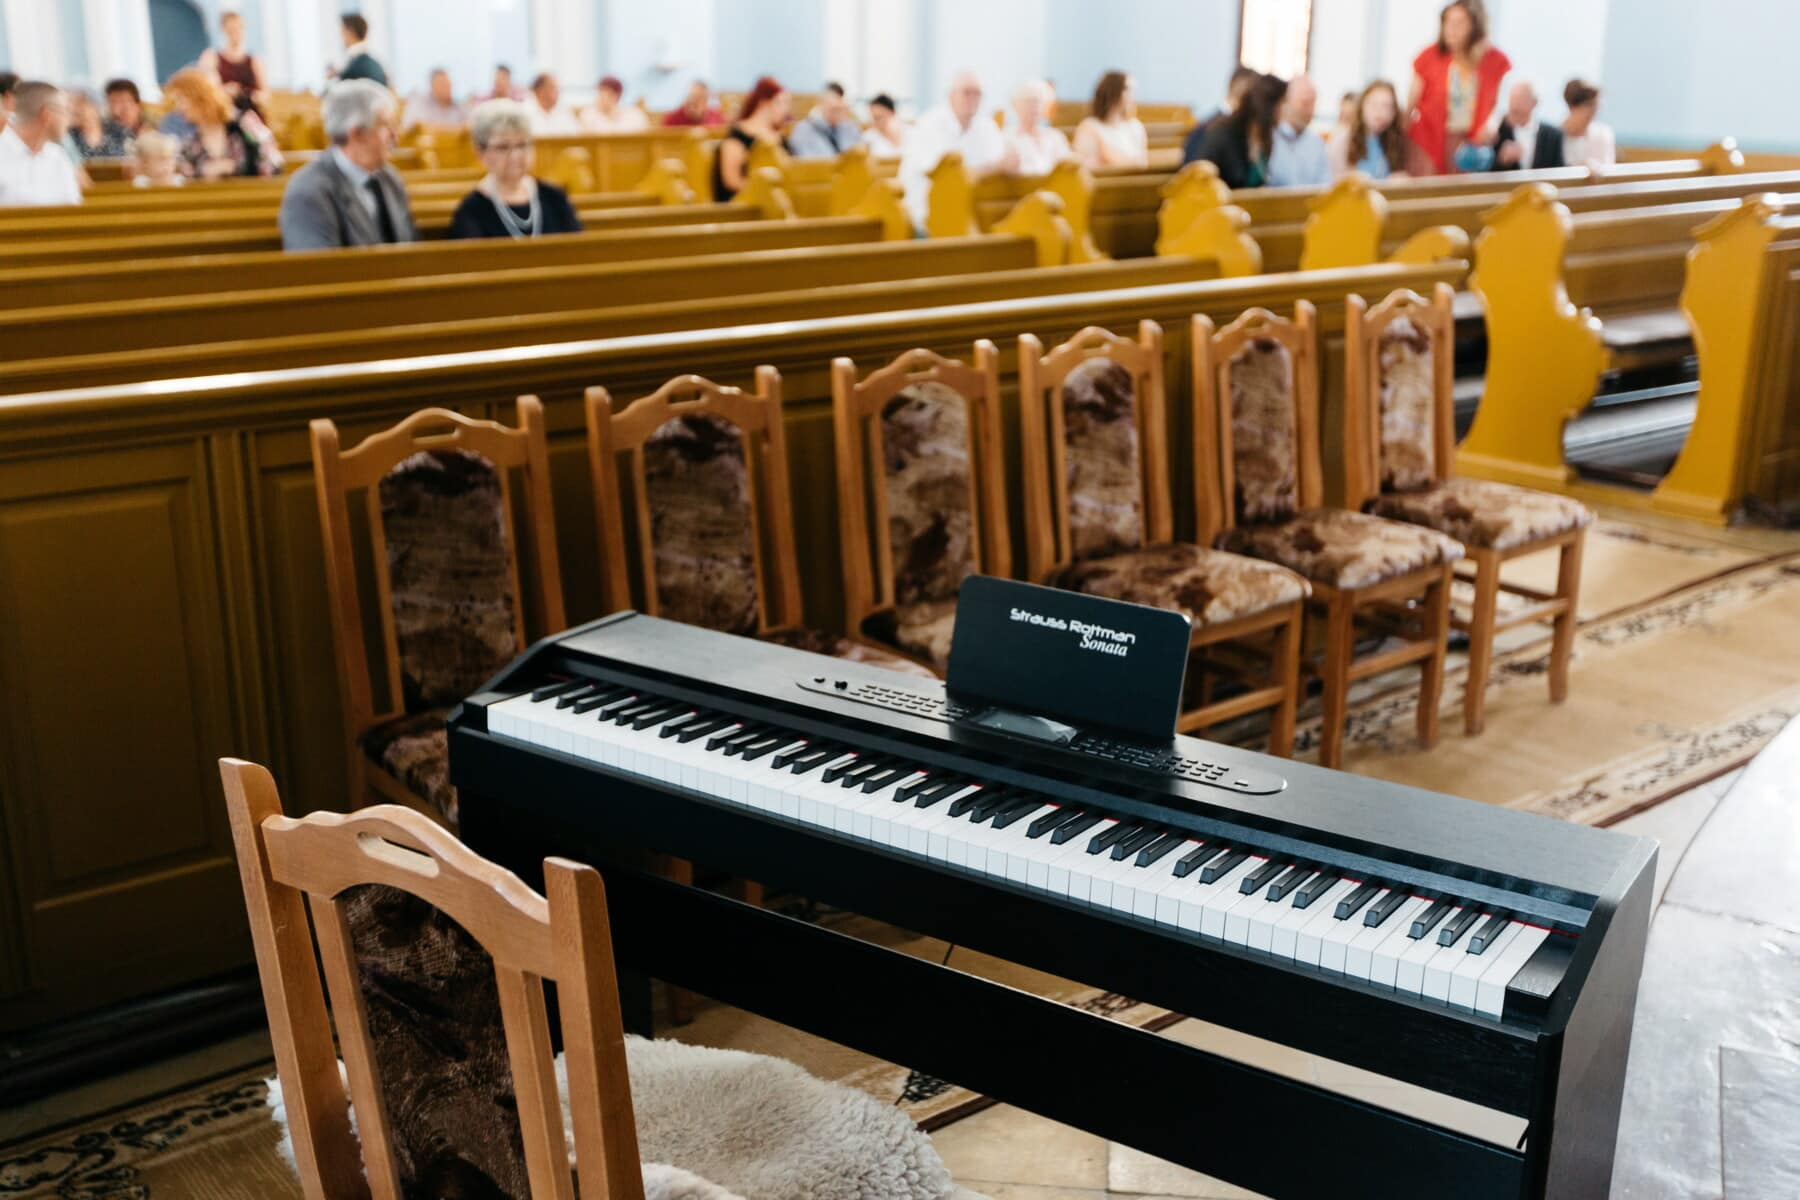 catholic, church, piano, music, instrument, wood, indoors, sound, education, concert